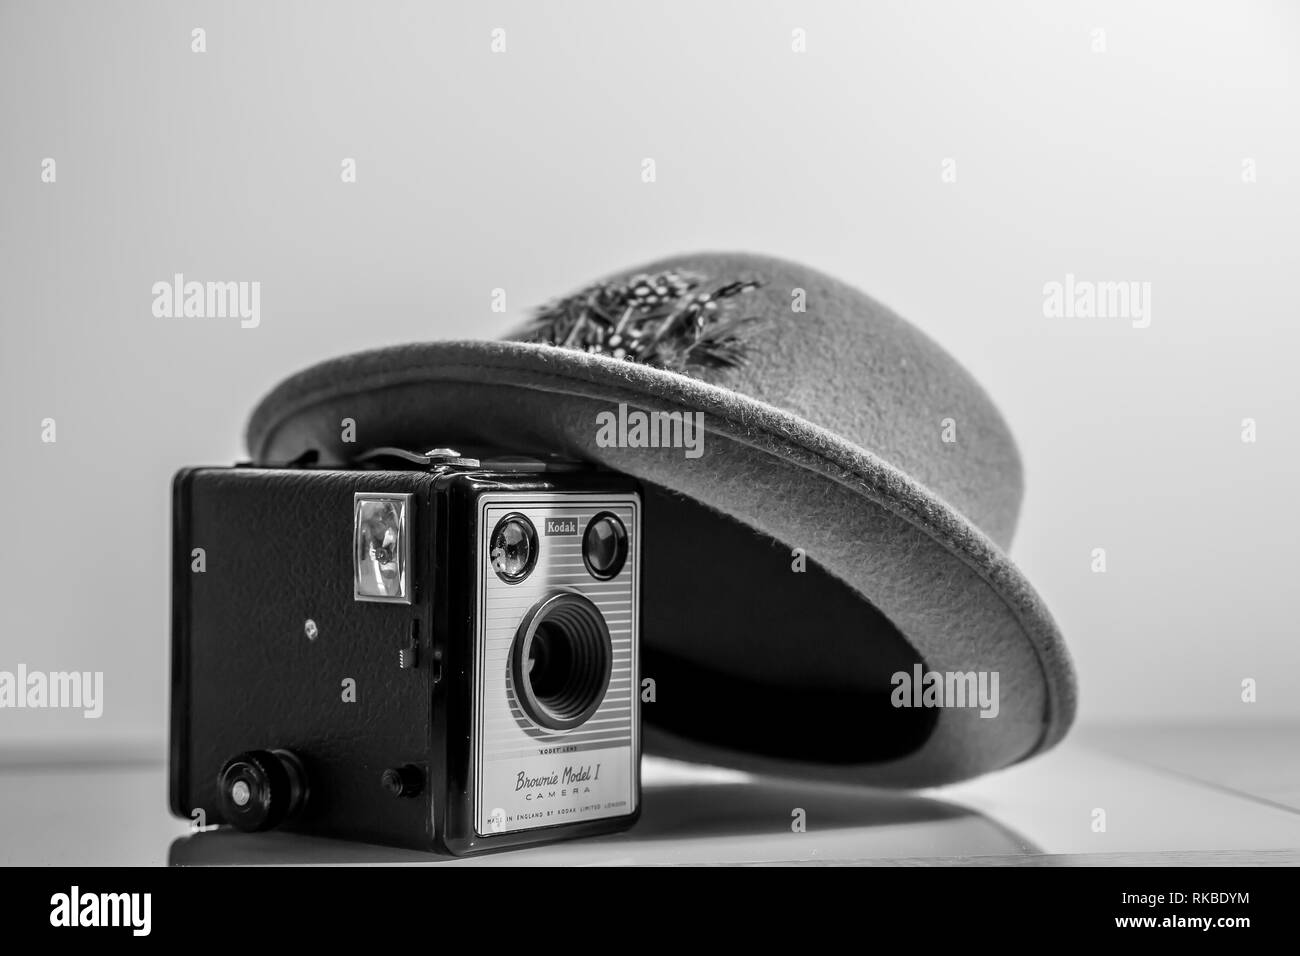 Black and white, interior close up of 1950's Fedora hat leaning artistically on an old, vintage Kodak Box Brownie camera (Model 1) of the same period. - Stock Image